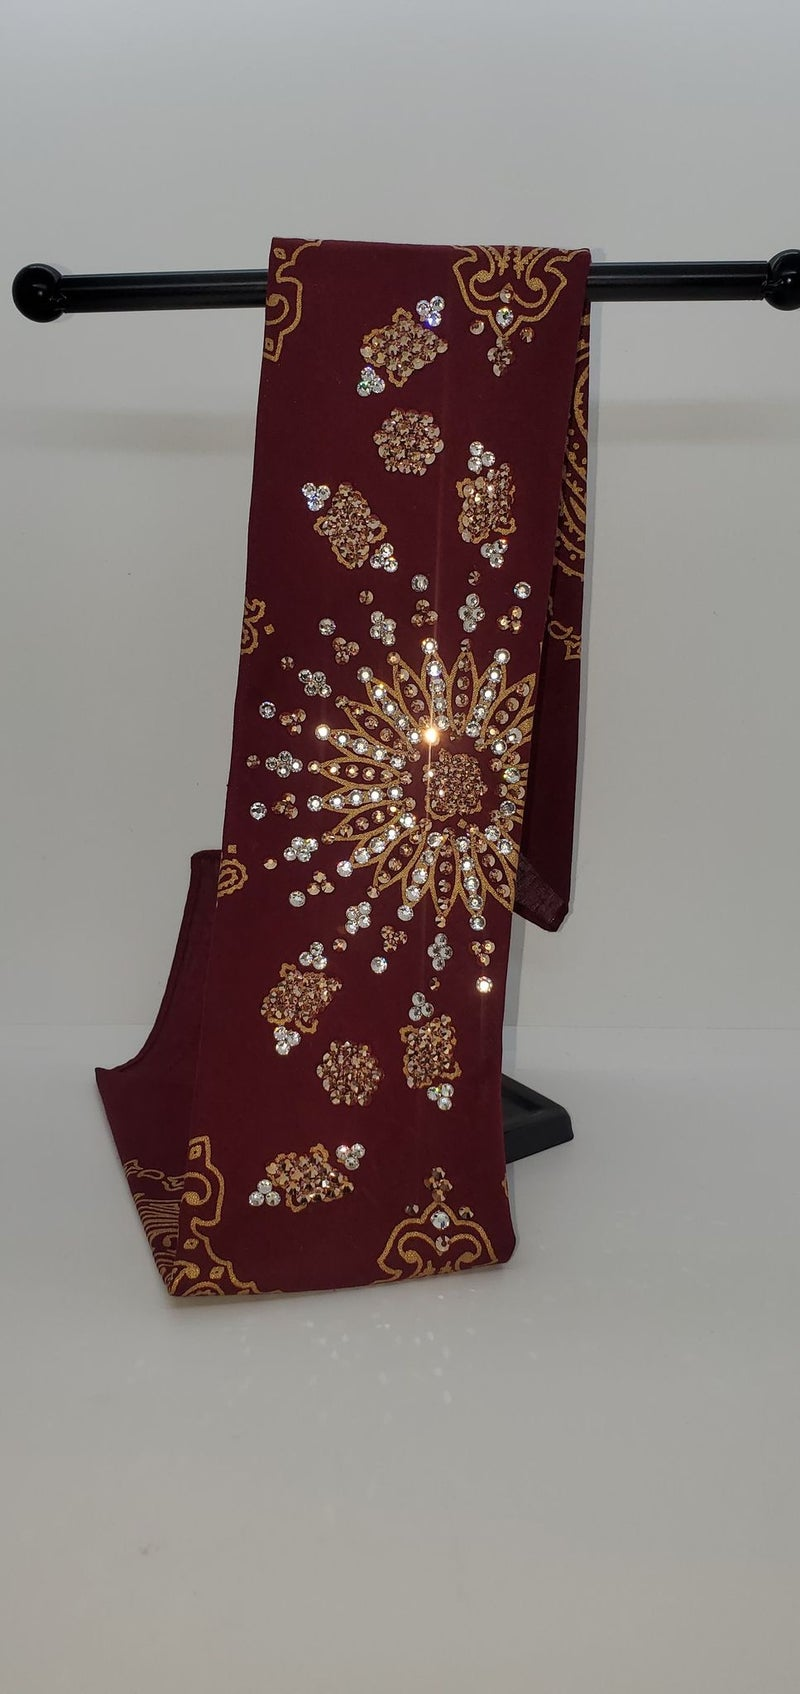 LeeAnnette Gold Paisley on Maroon with Rose Gold and Diamond Clear Crystals (Sku4370)